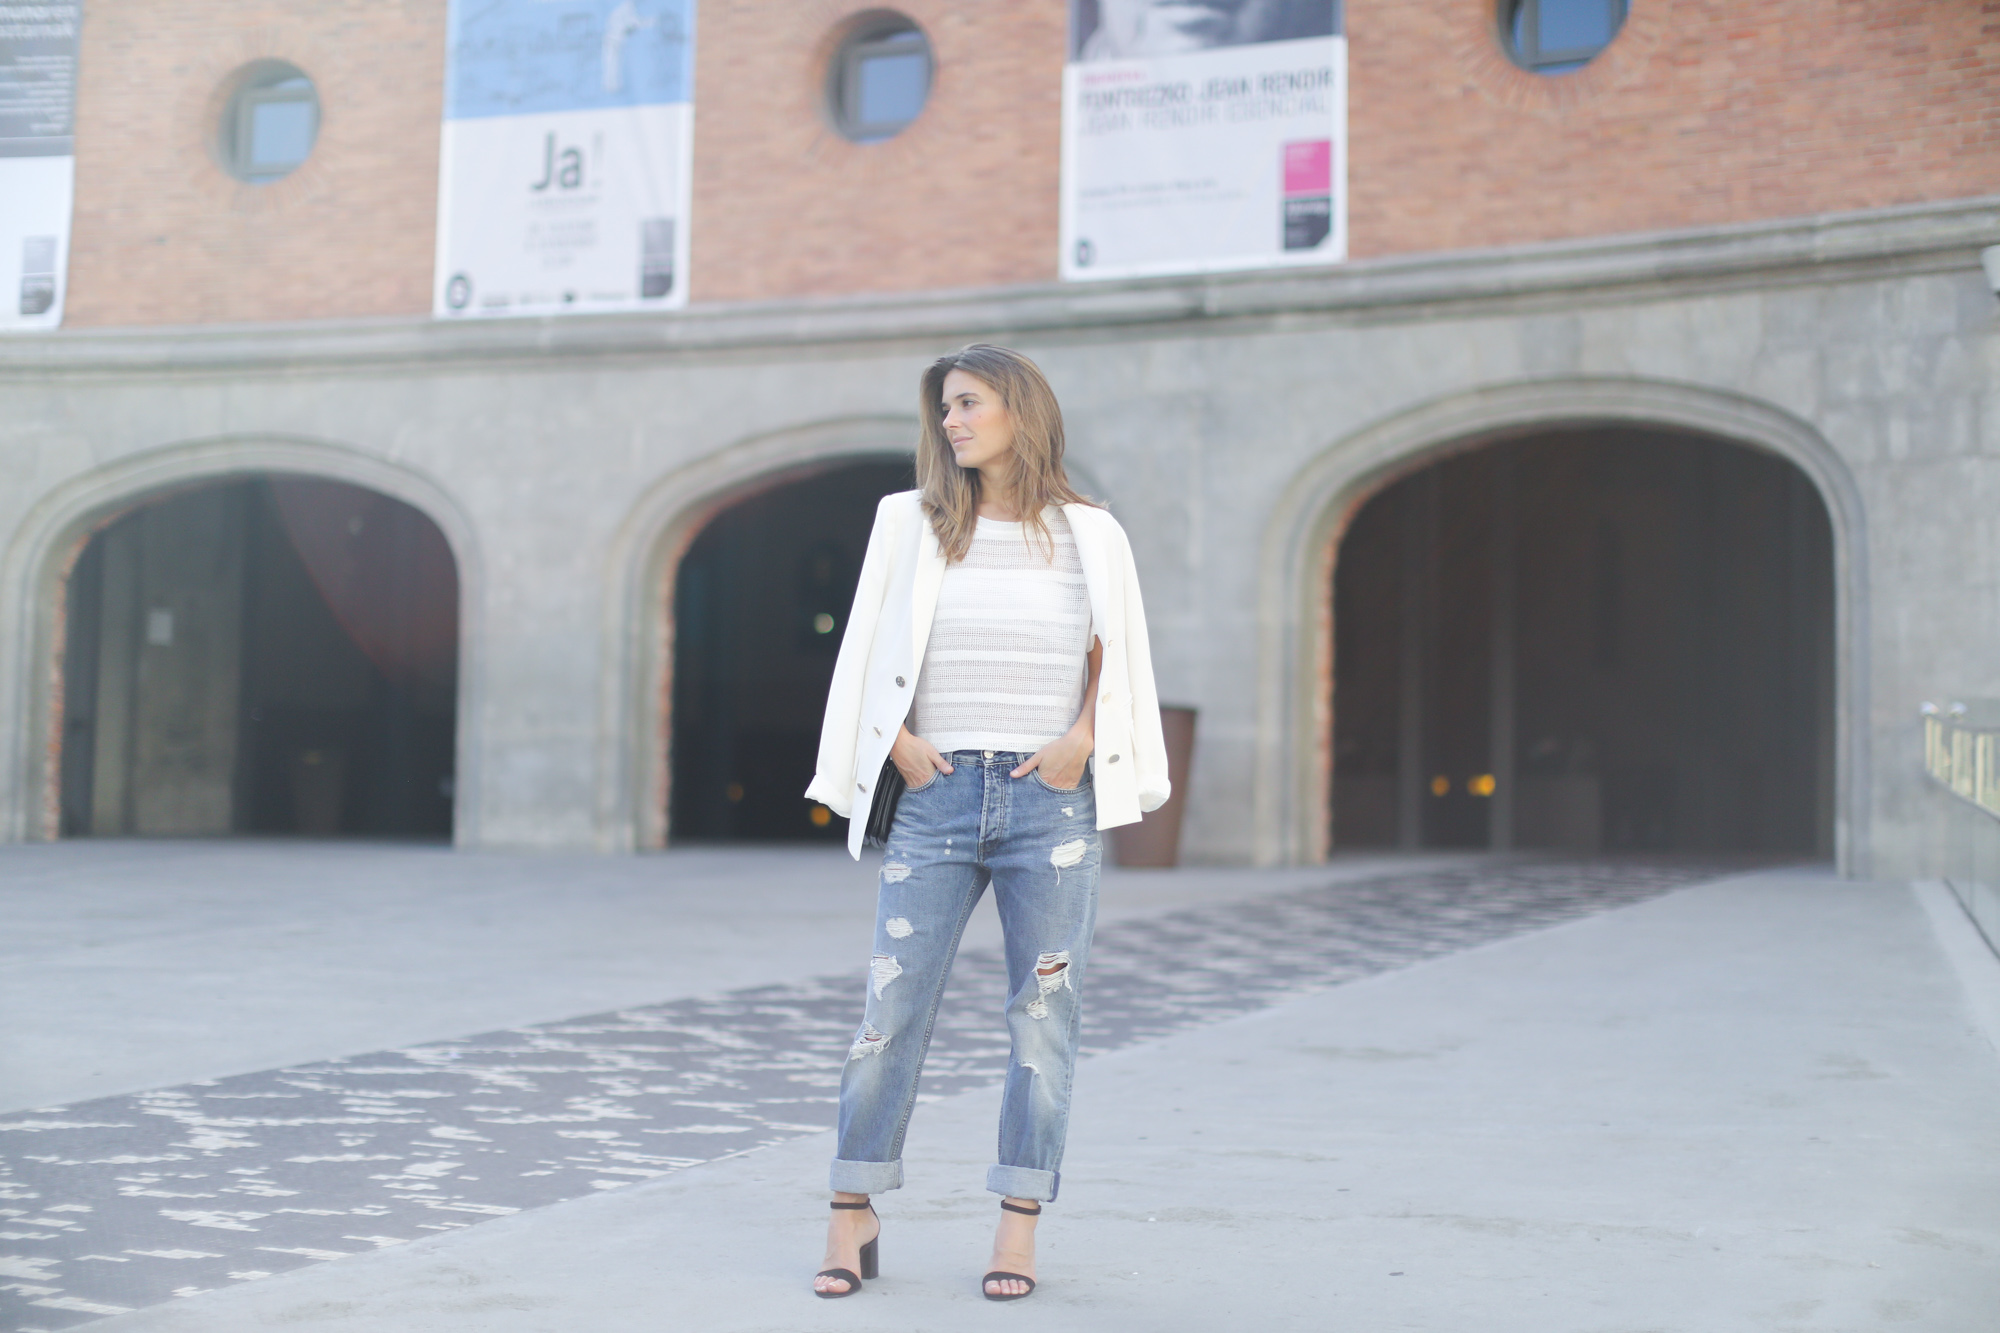 Clochet-streetstyle-suiteblanco-white-suit-jacket-acne-studios-boyfriend-jeans-celine-trio-bag-3